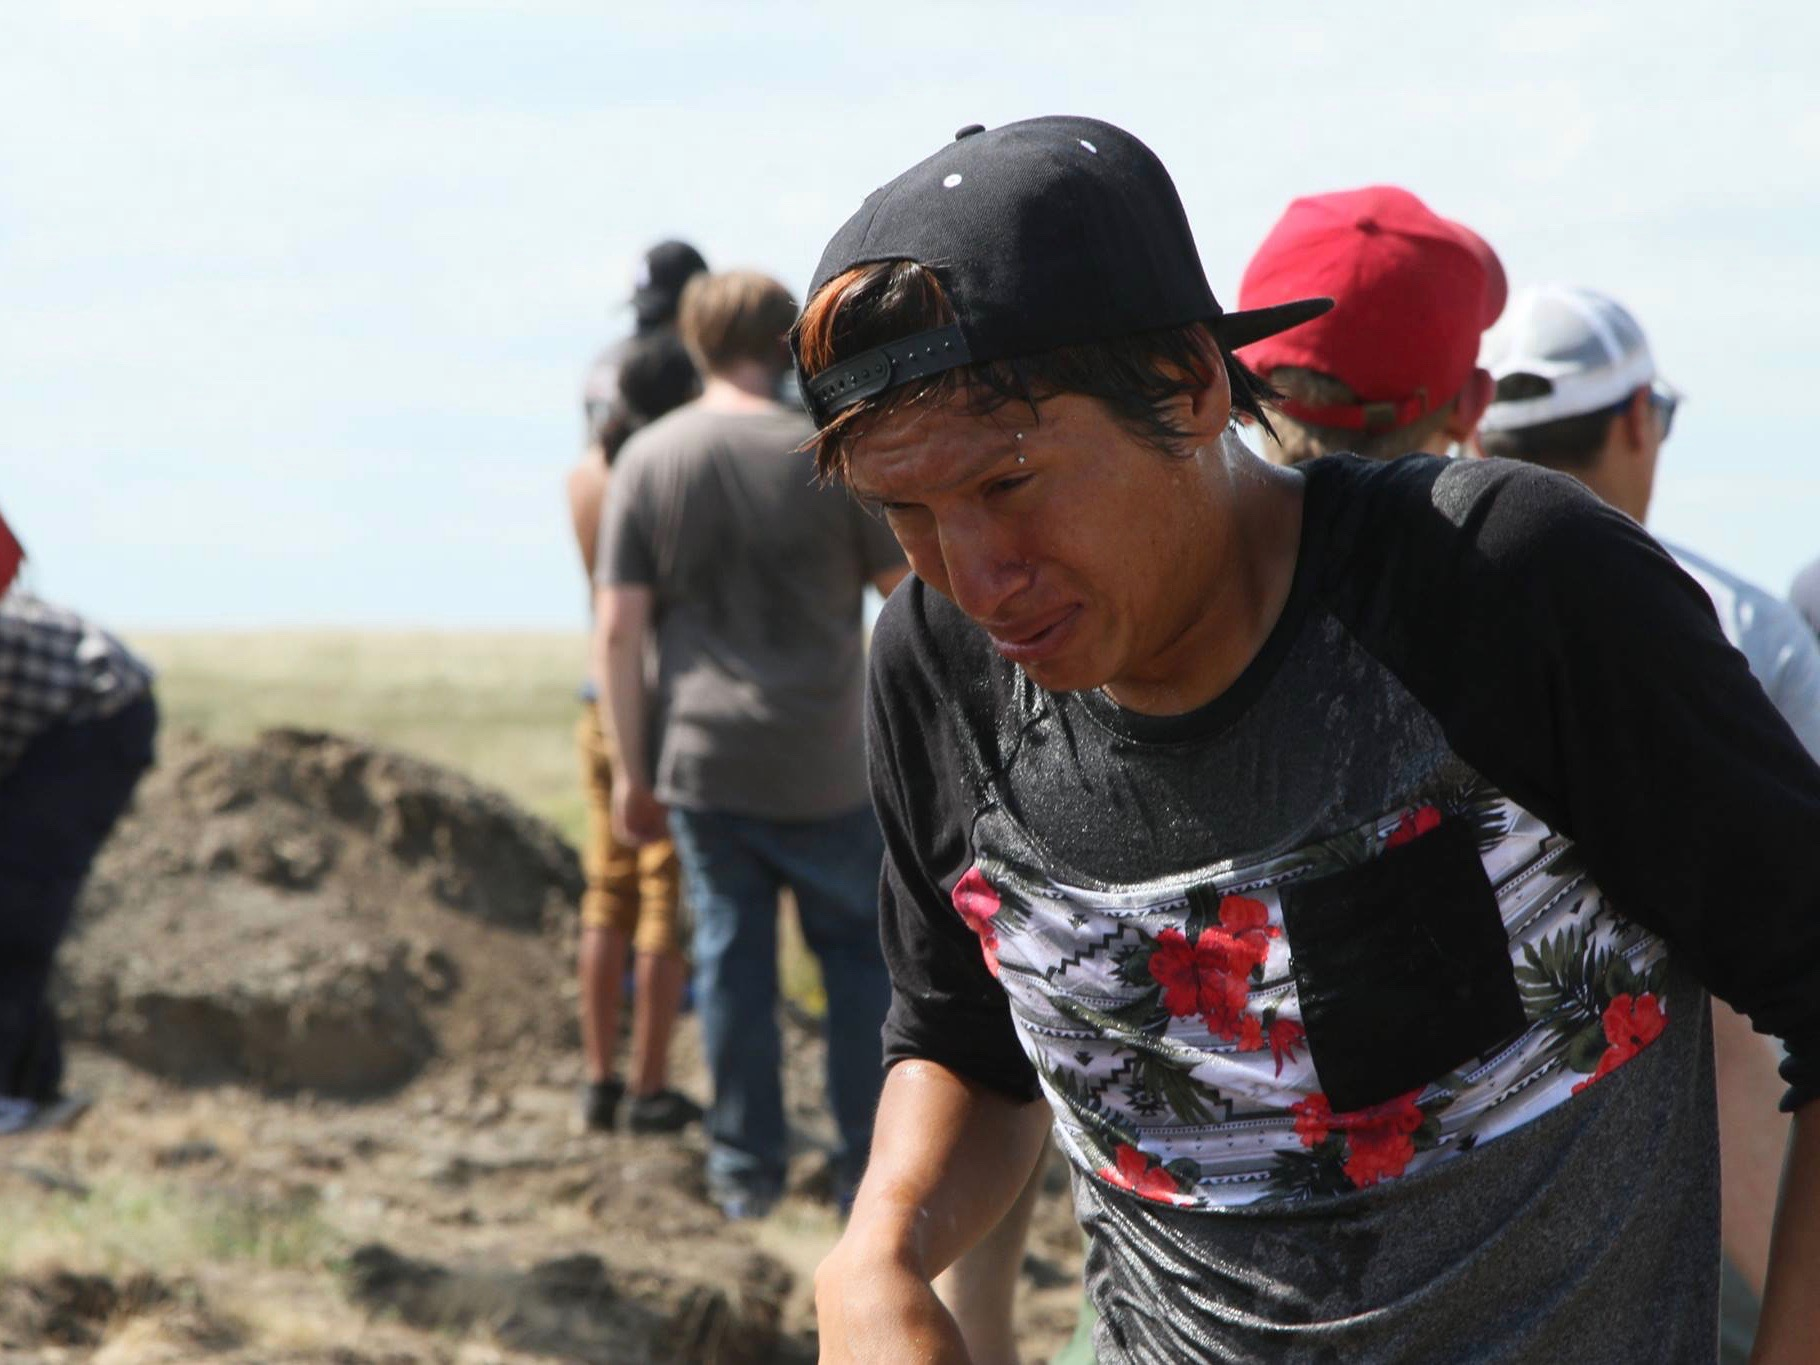 Brandon Ecoffey: Pipeline destroys our sacred and cultural sites